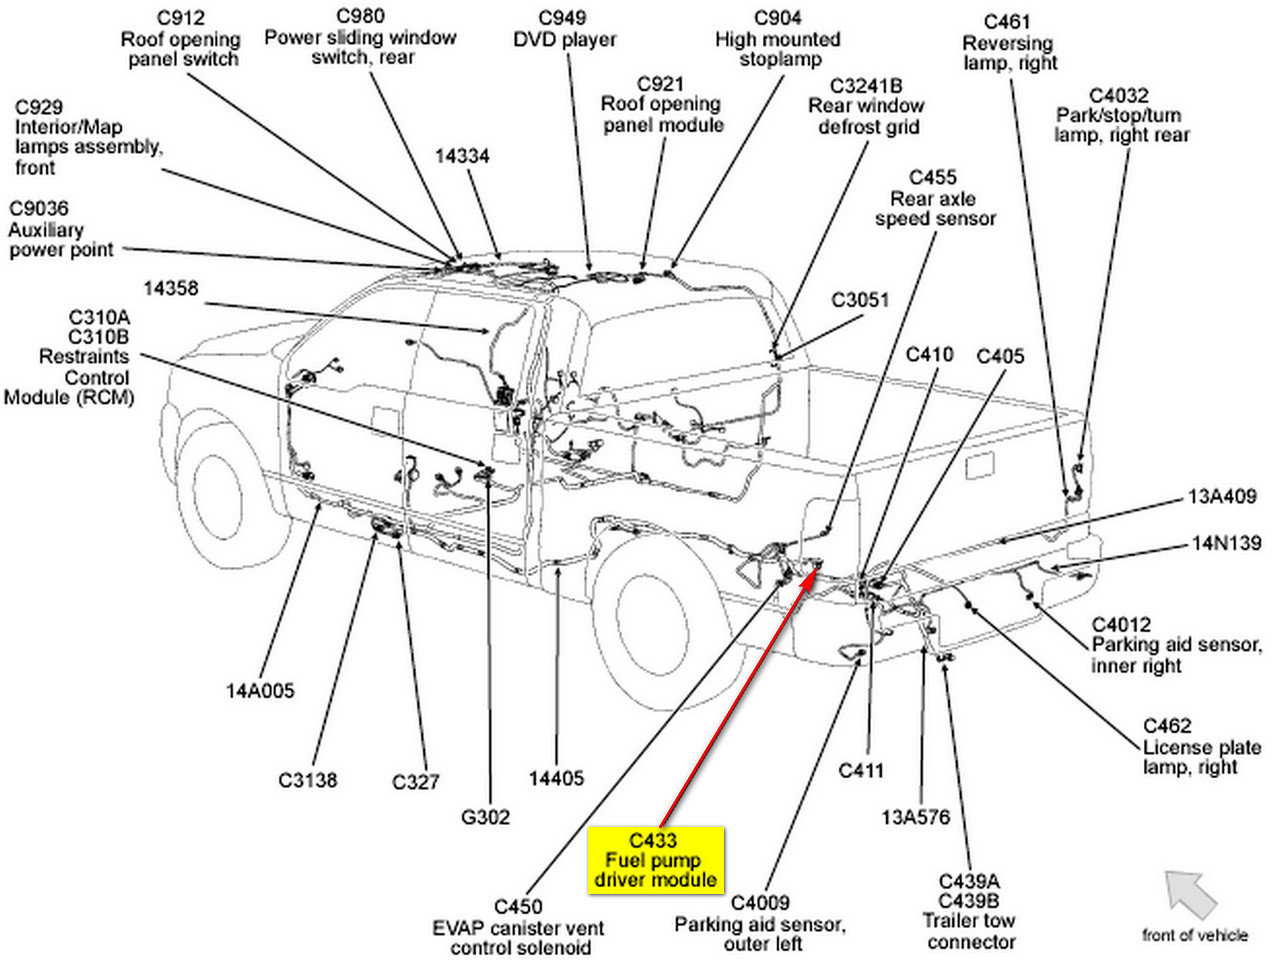 2003 Lincoln Navigator Evap Diagram additionally 1996 Ford Windstar Steering Column Diagram moreover Colorado Purge Valve Solenoid Location also Discussion C5523 ds549559 further F Engine Diagram Wiring Diagrams Online With. on 131367 po455 code